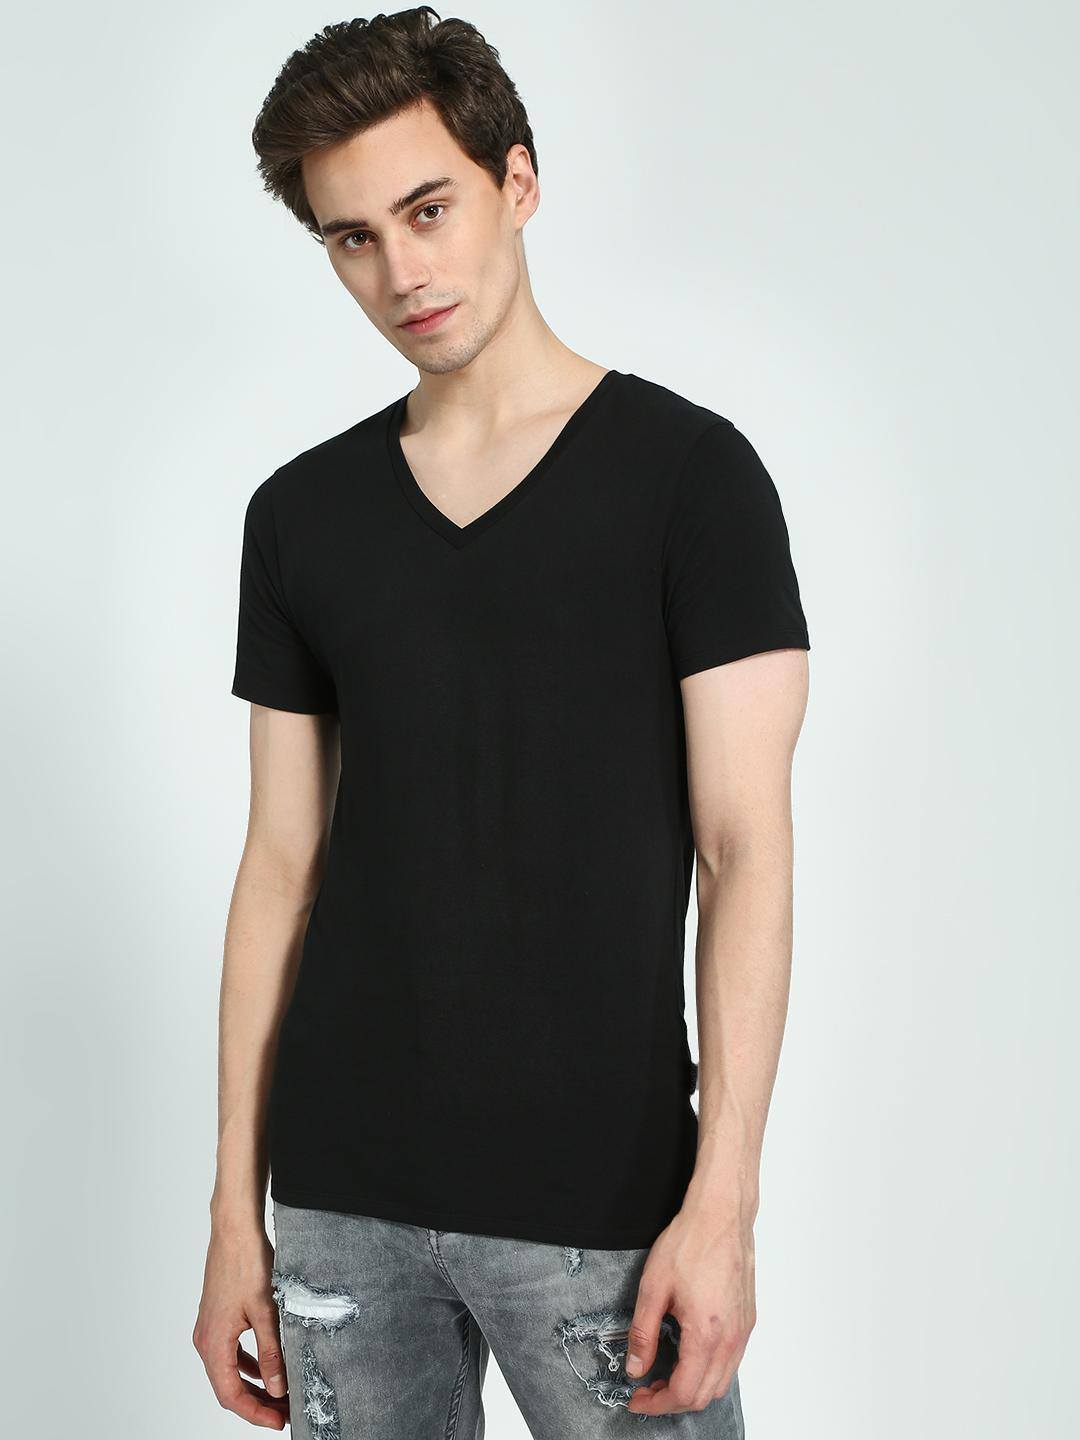 KOOVS Black V-Neck Muscle Fit T-Shirt 1